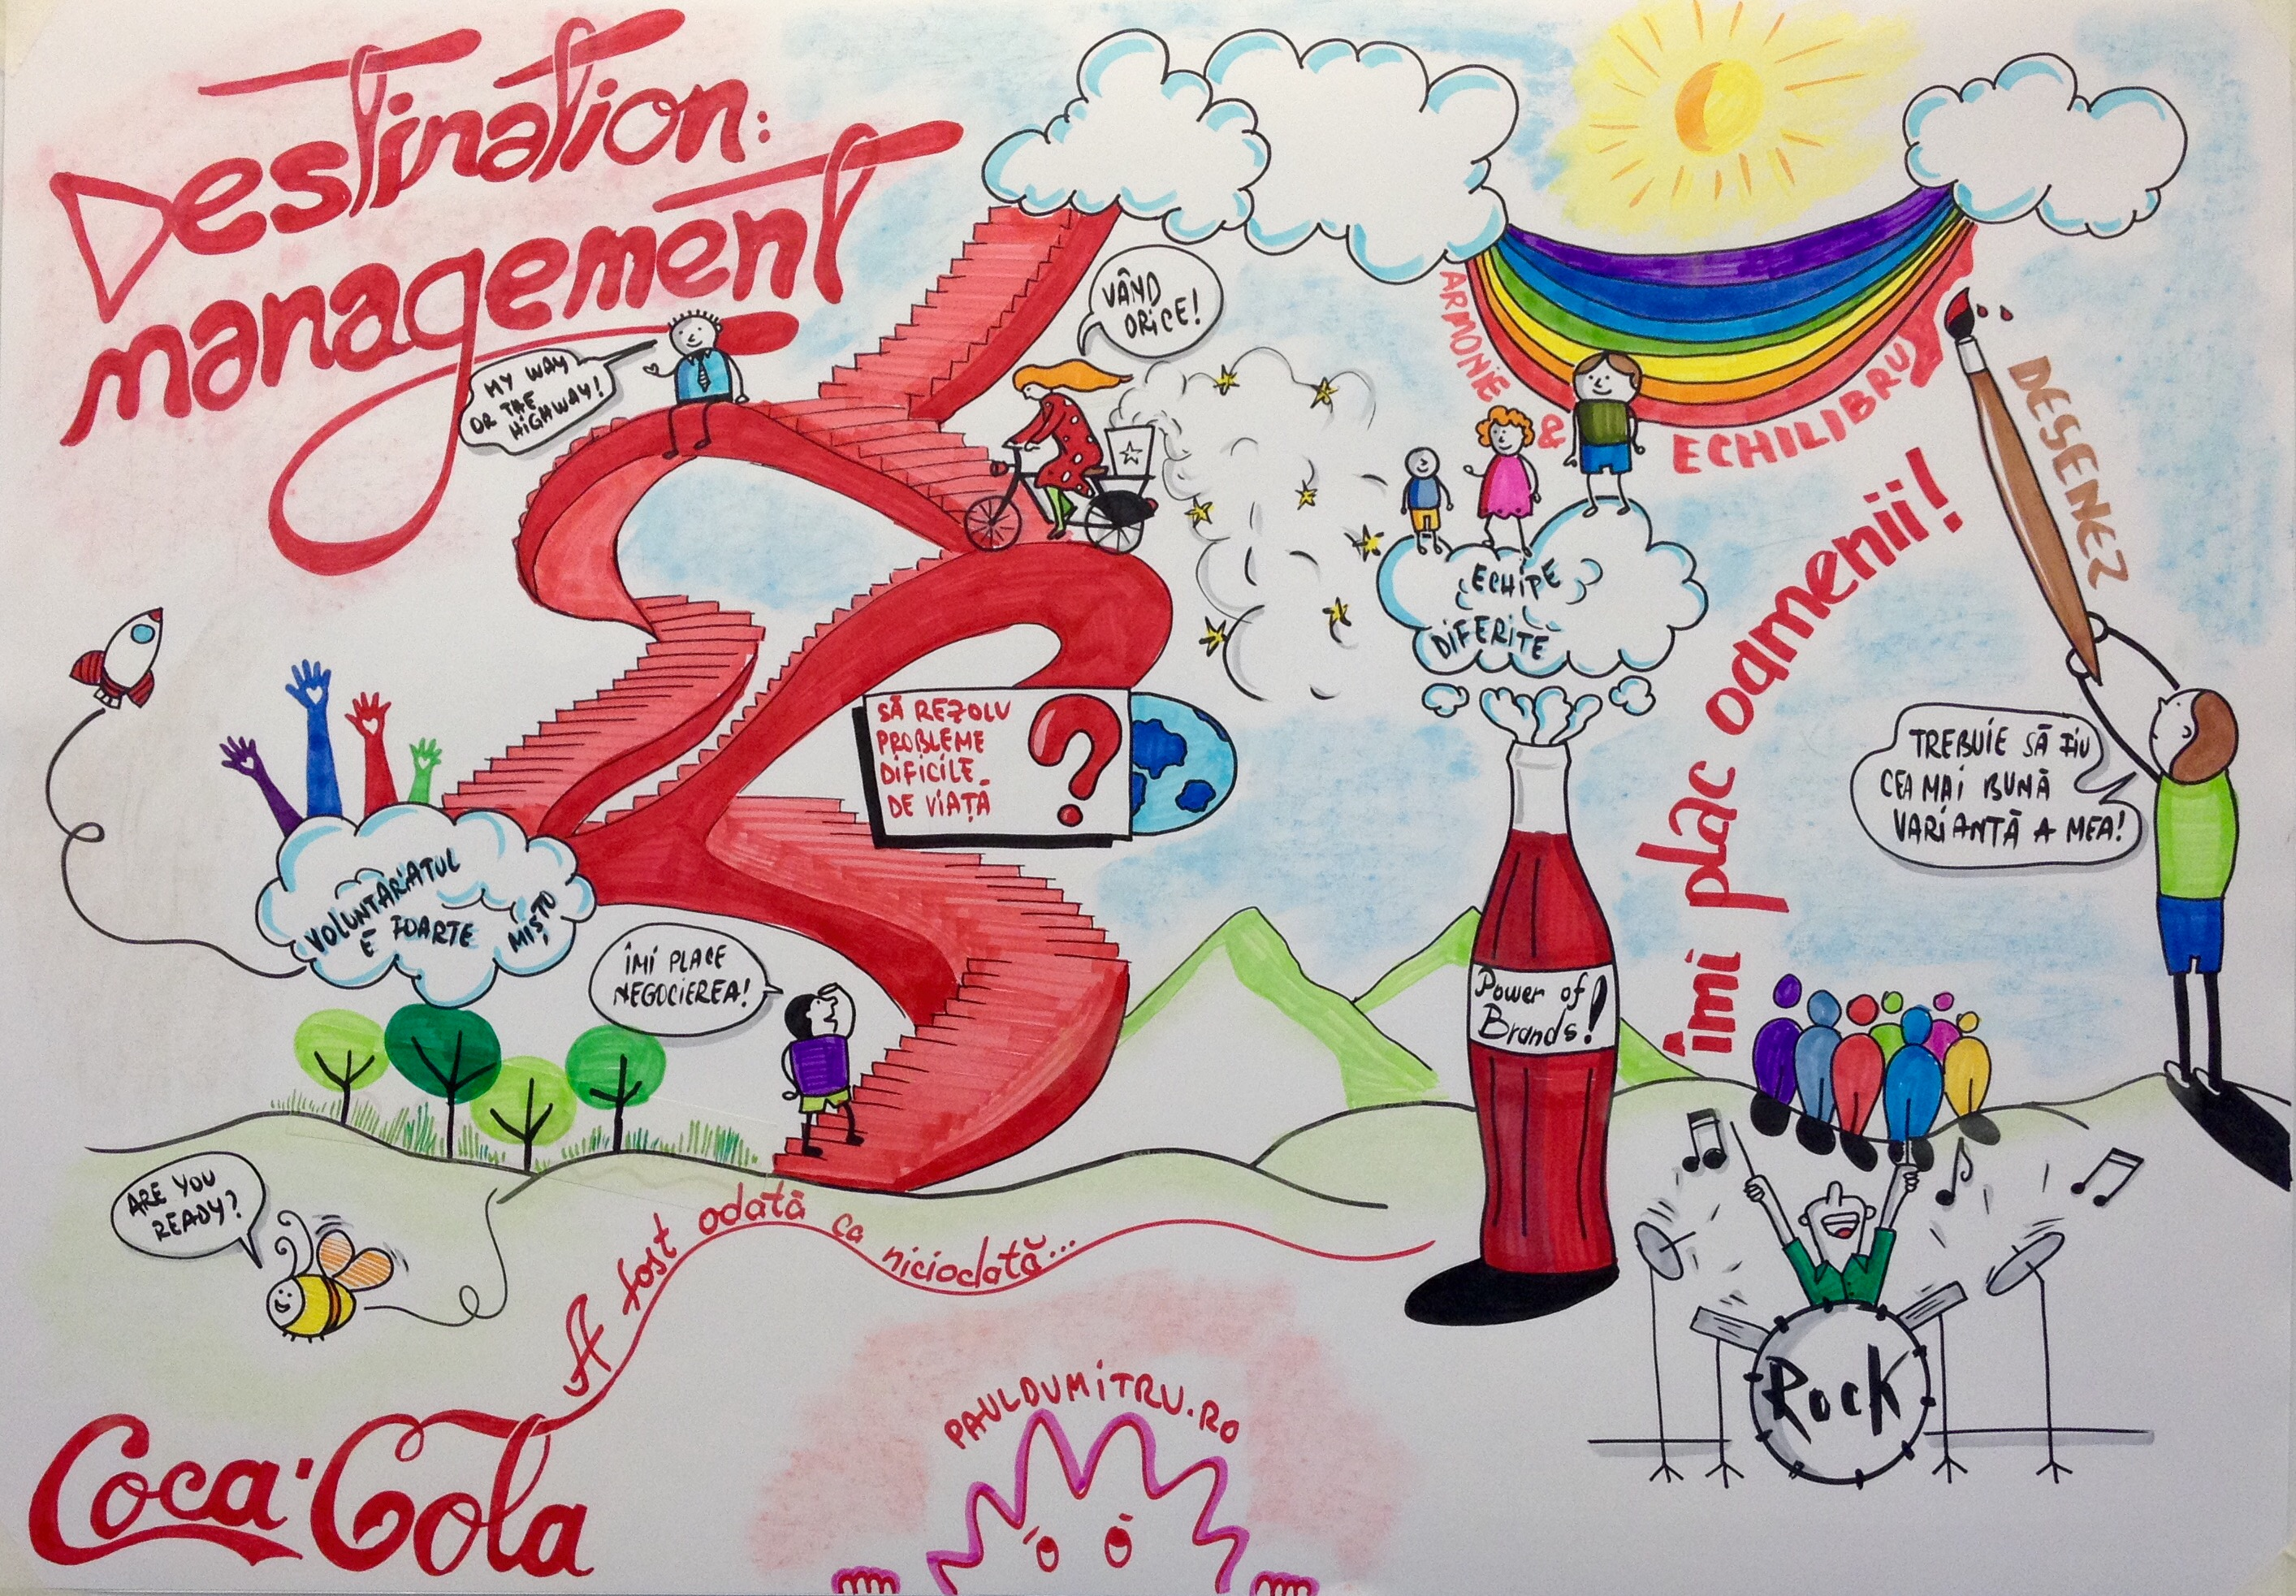 coca-cola-destination-management